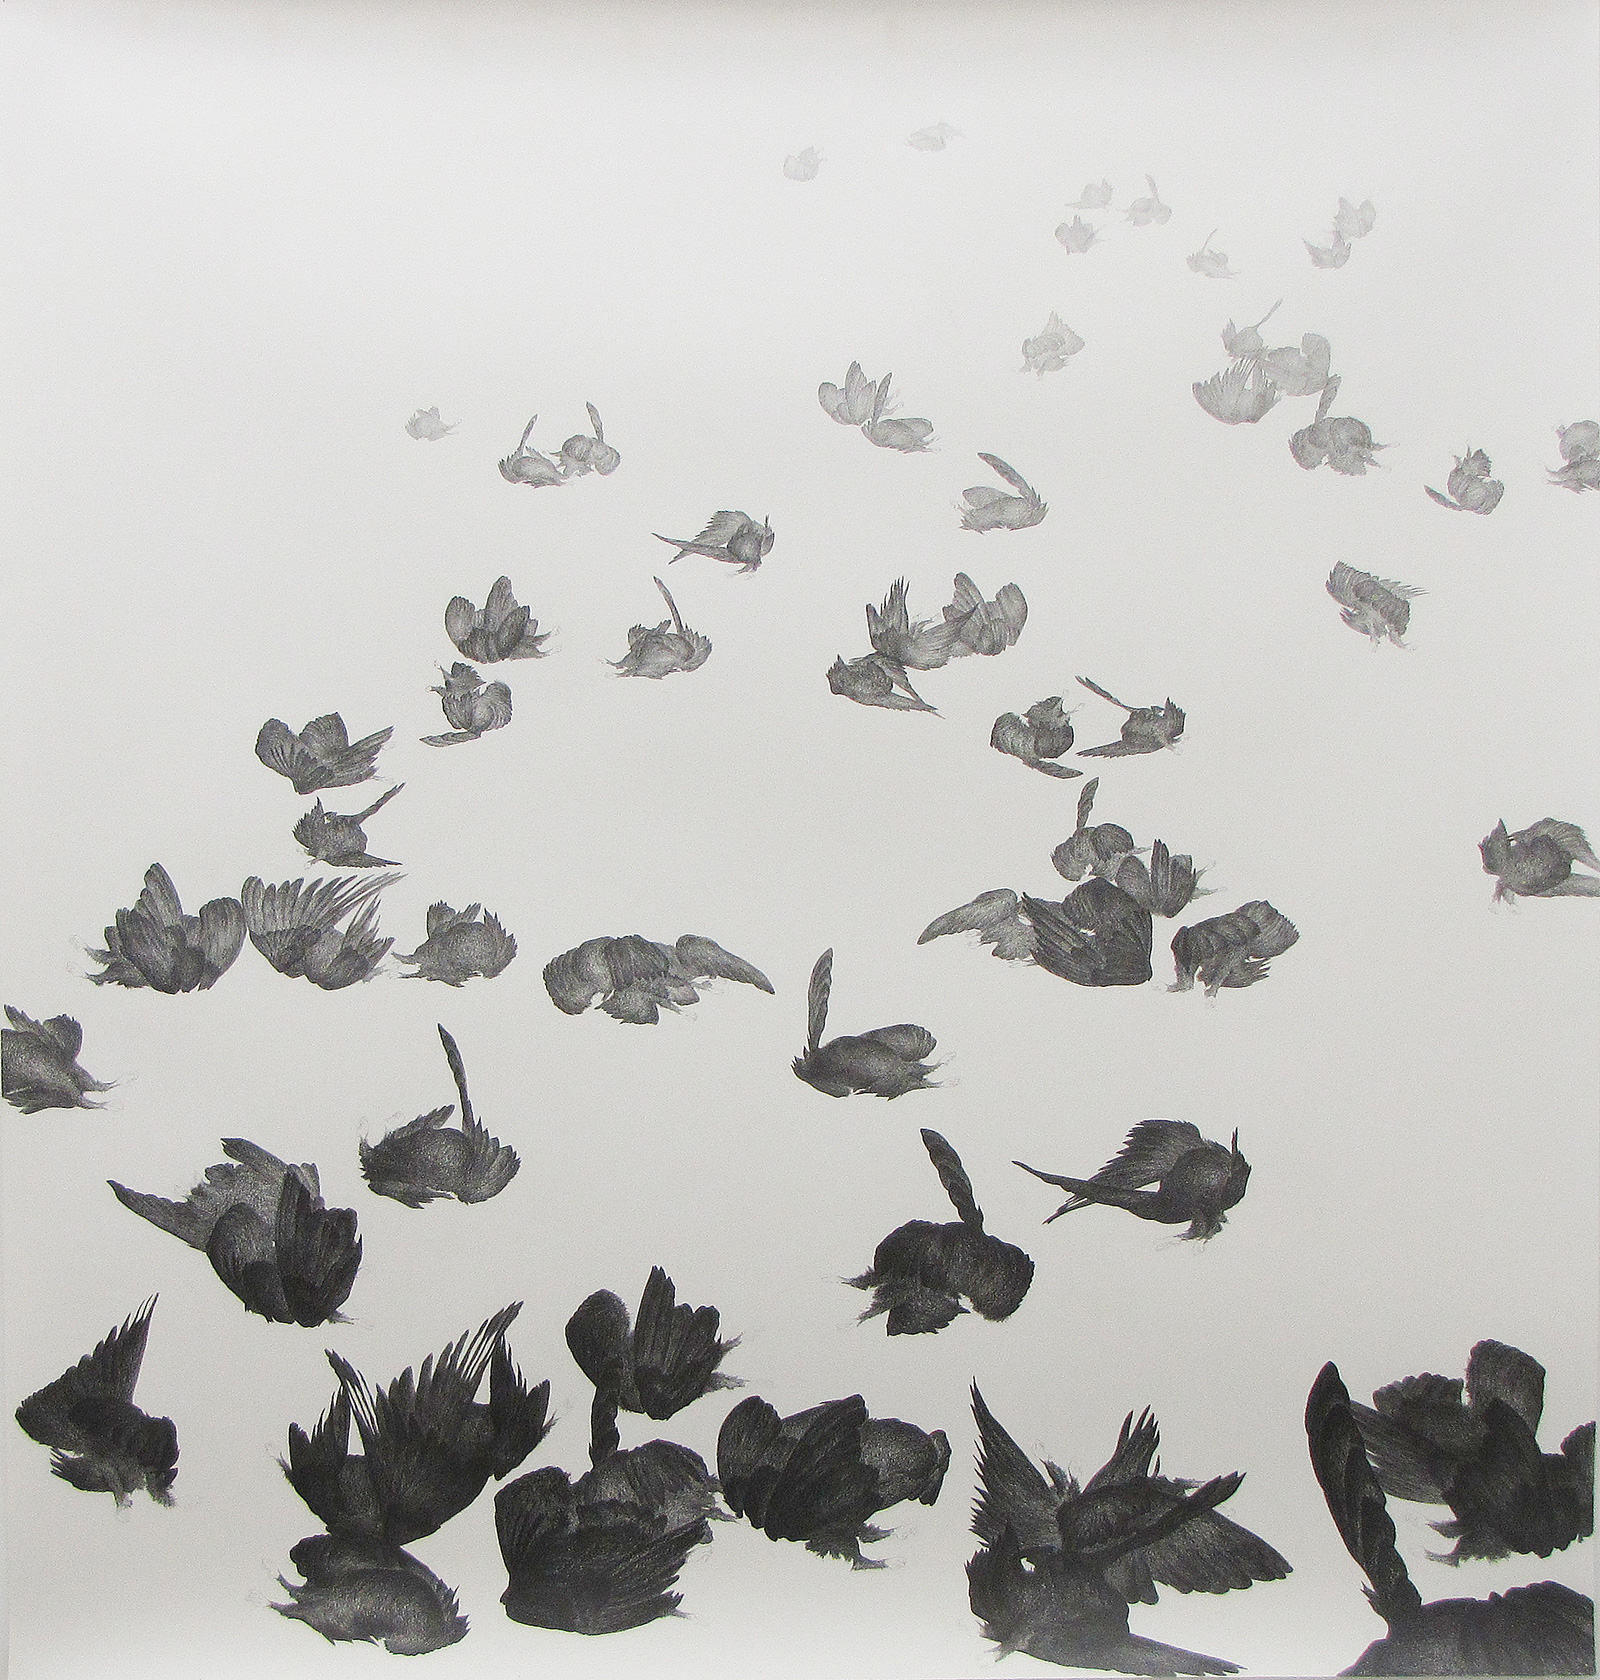 <i>Zone affectée</i>, 2009, graphite, 160x150cm